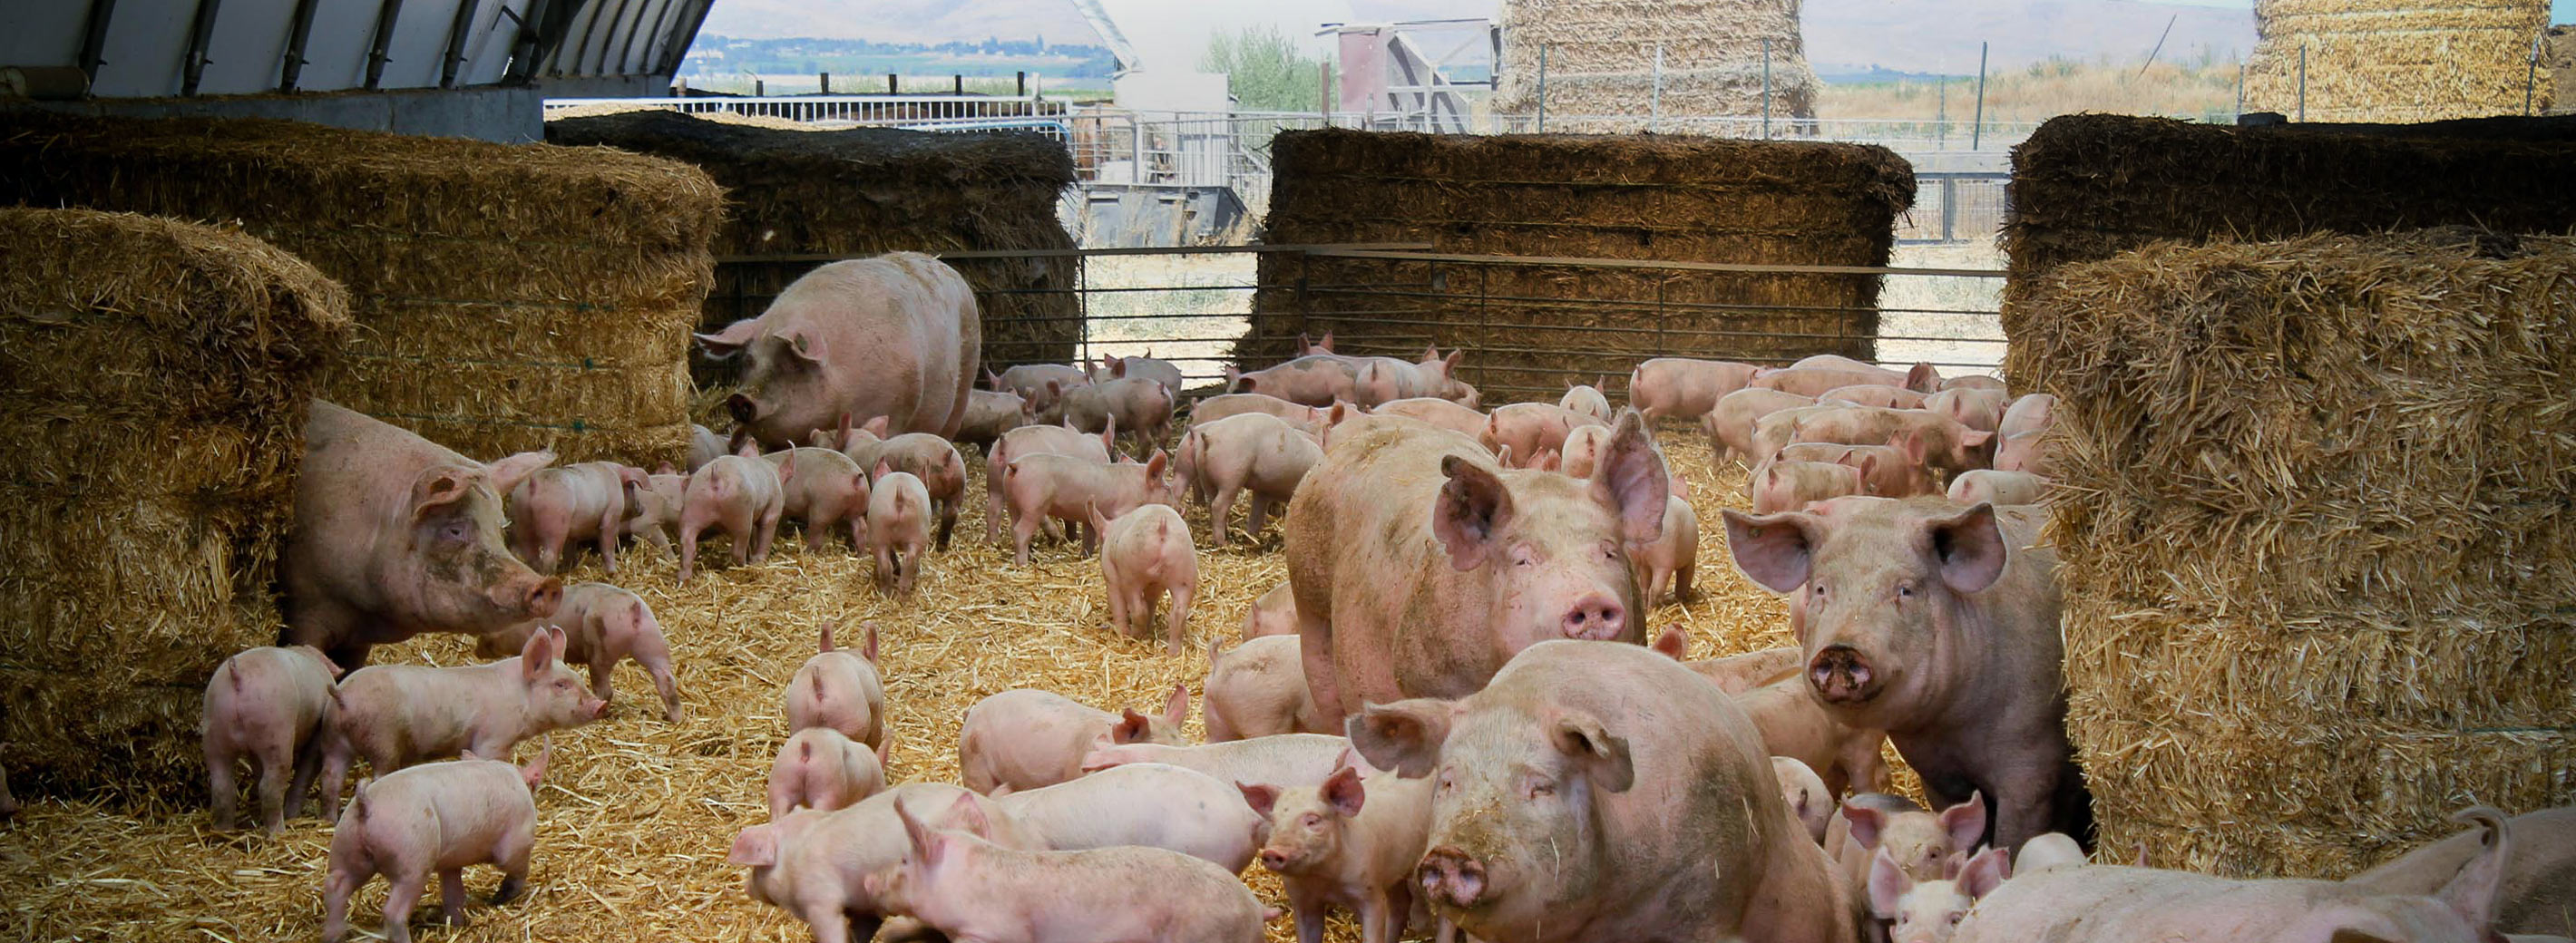 Phasing Out Gestation Crates for Pork and Battery Cages for Hens